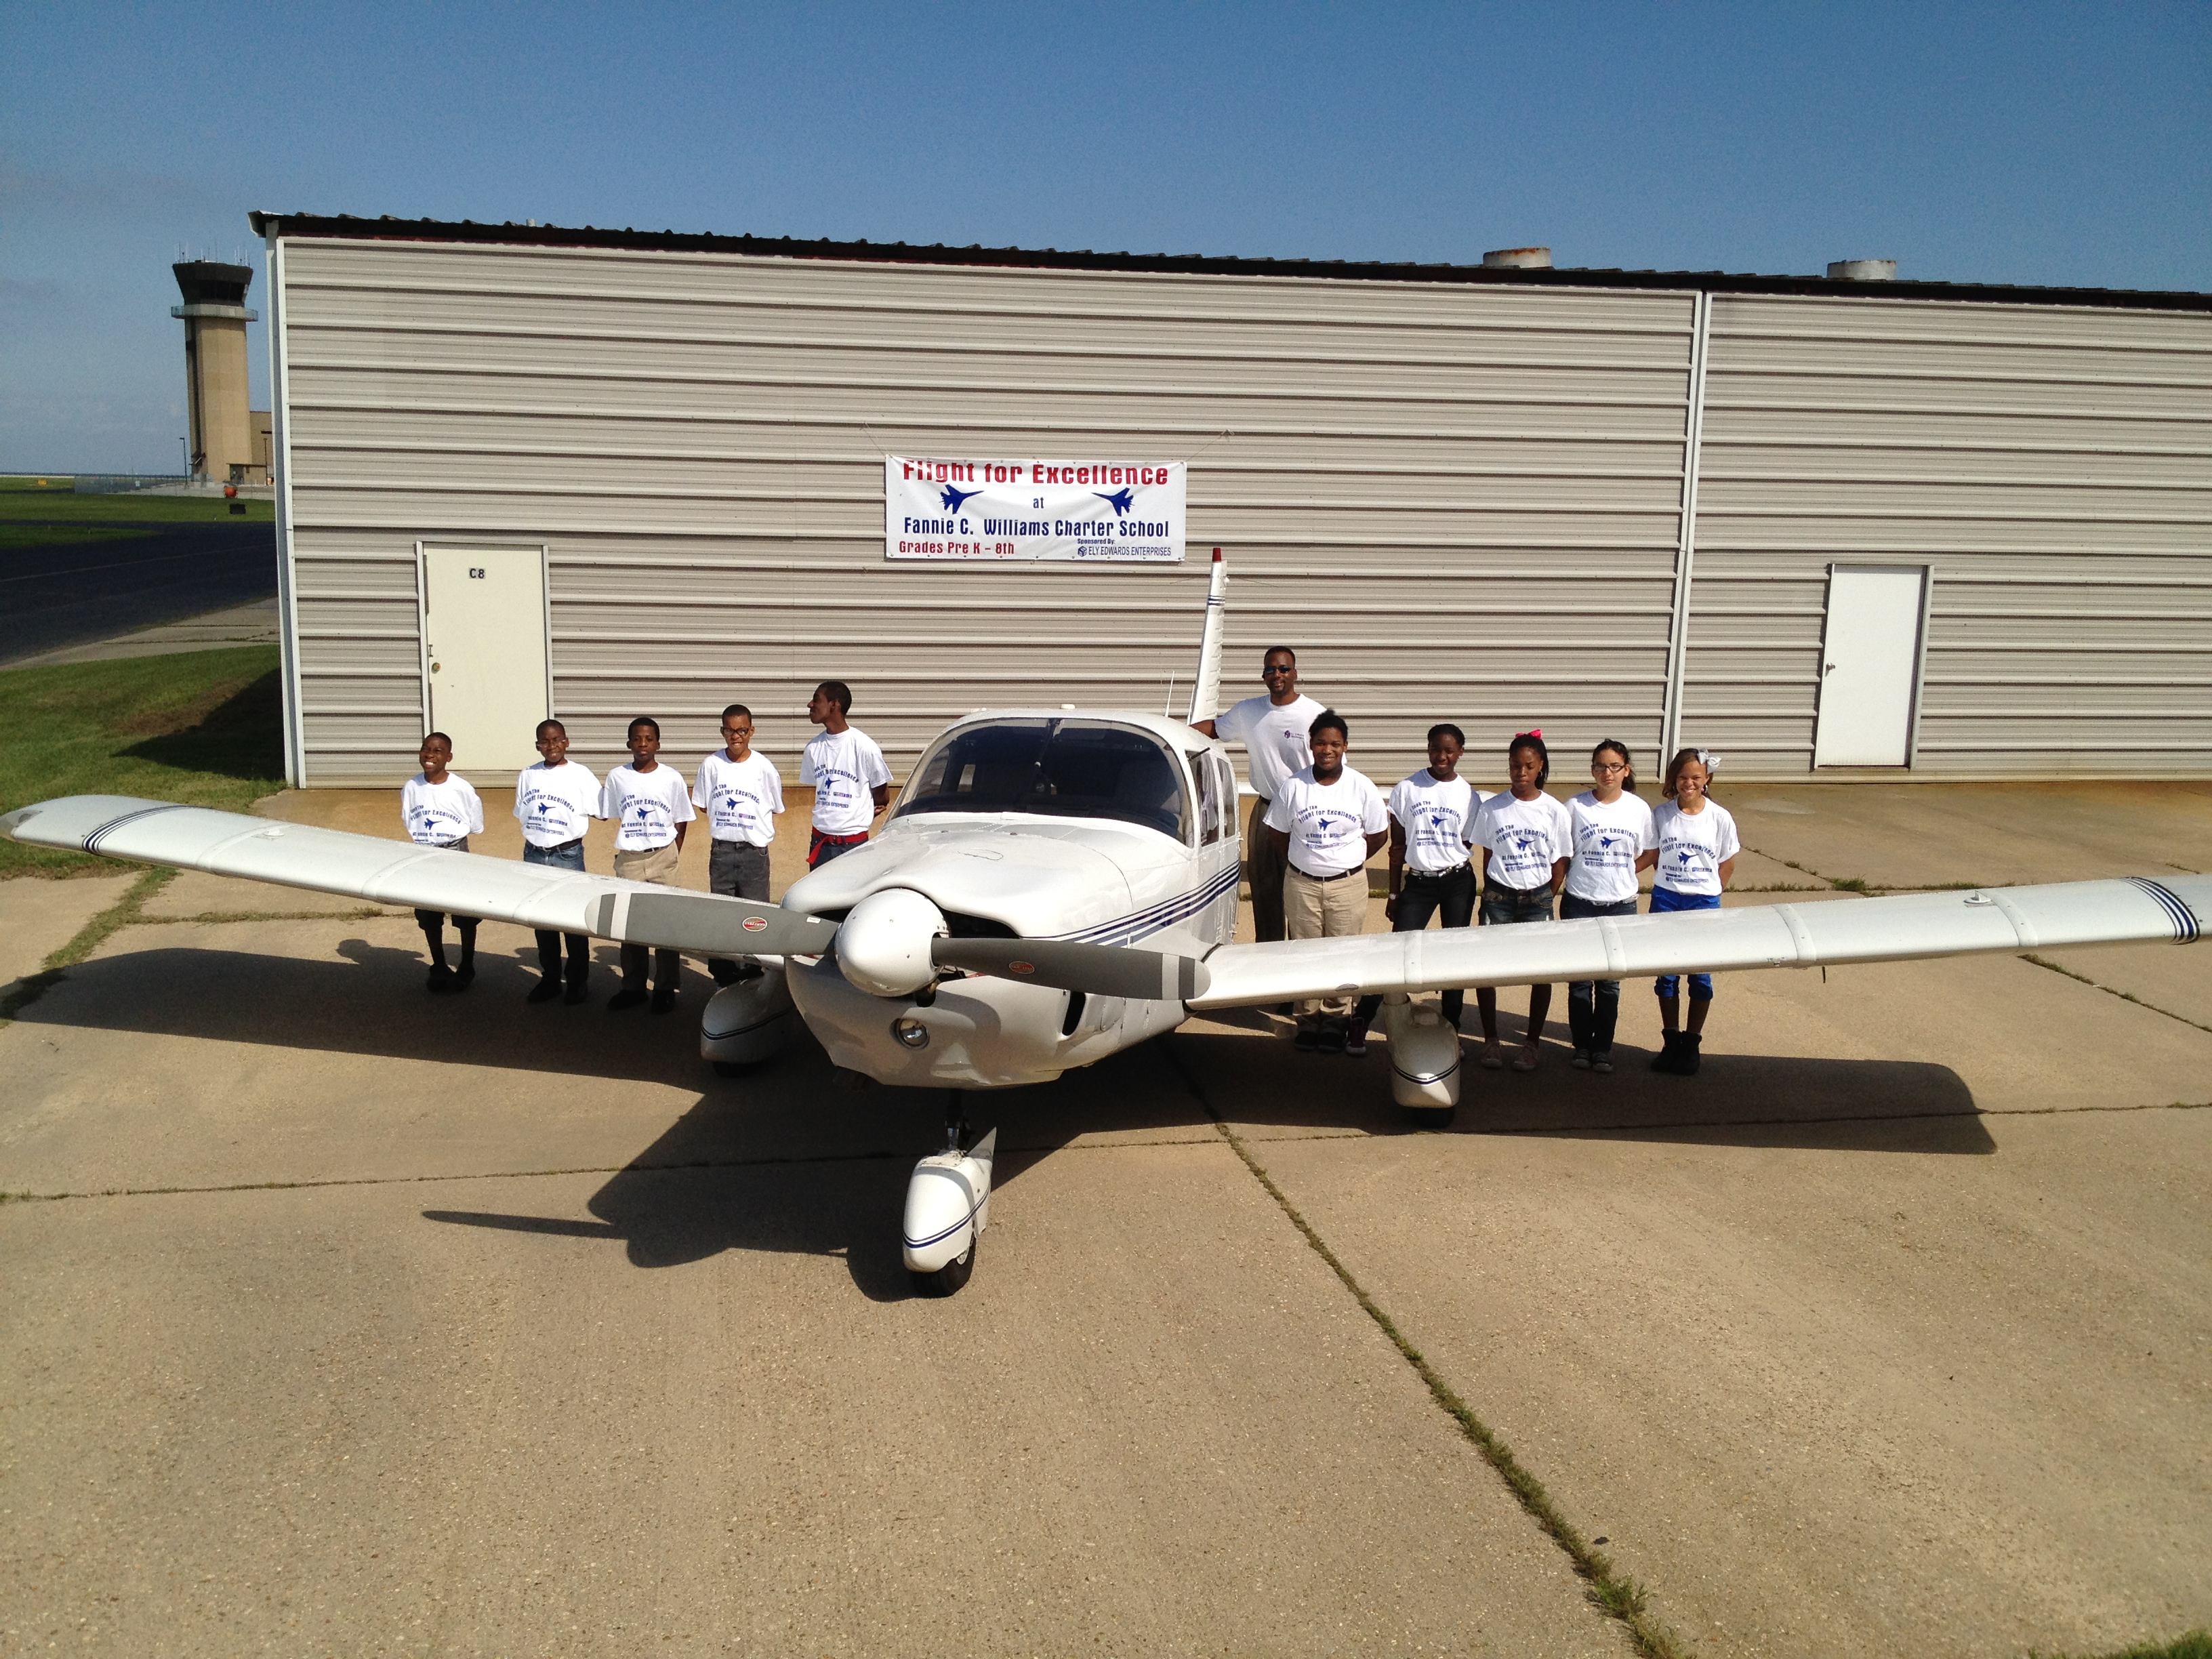 Aircraft and Fannie C. Kids